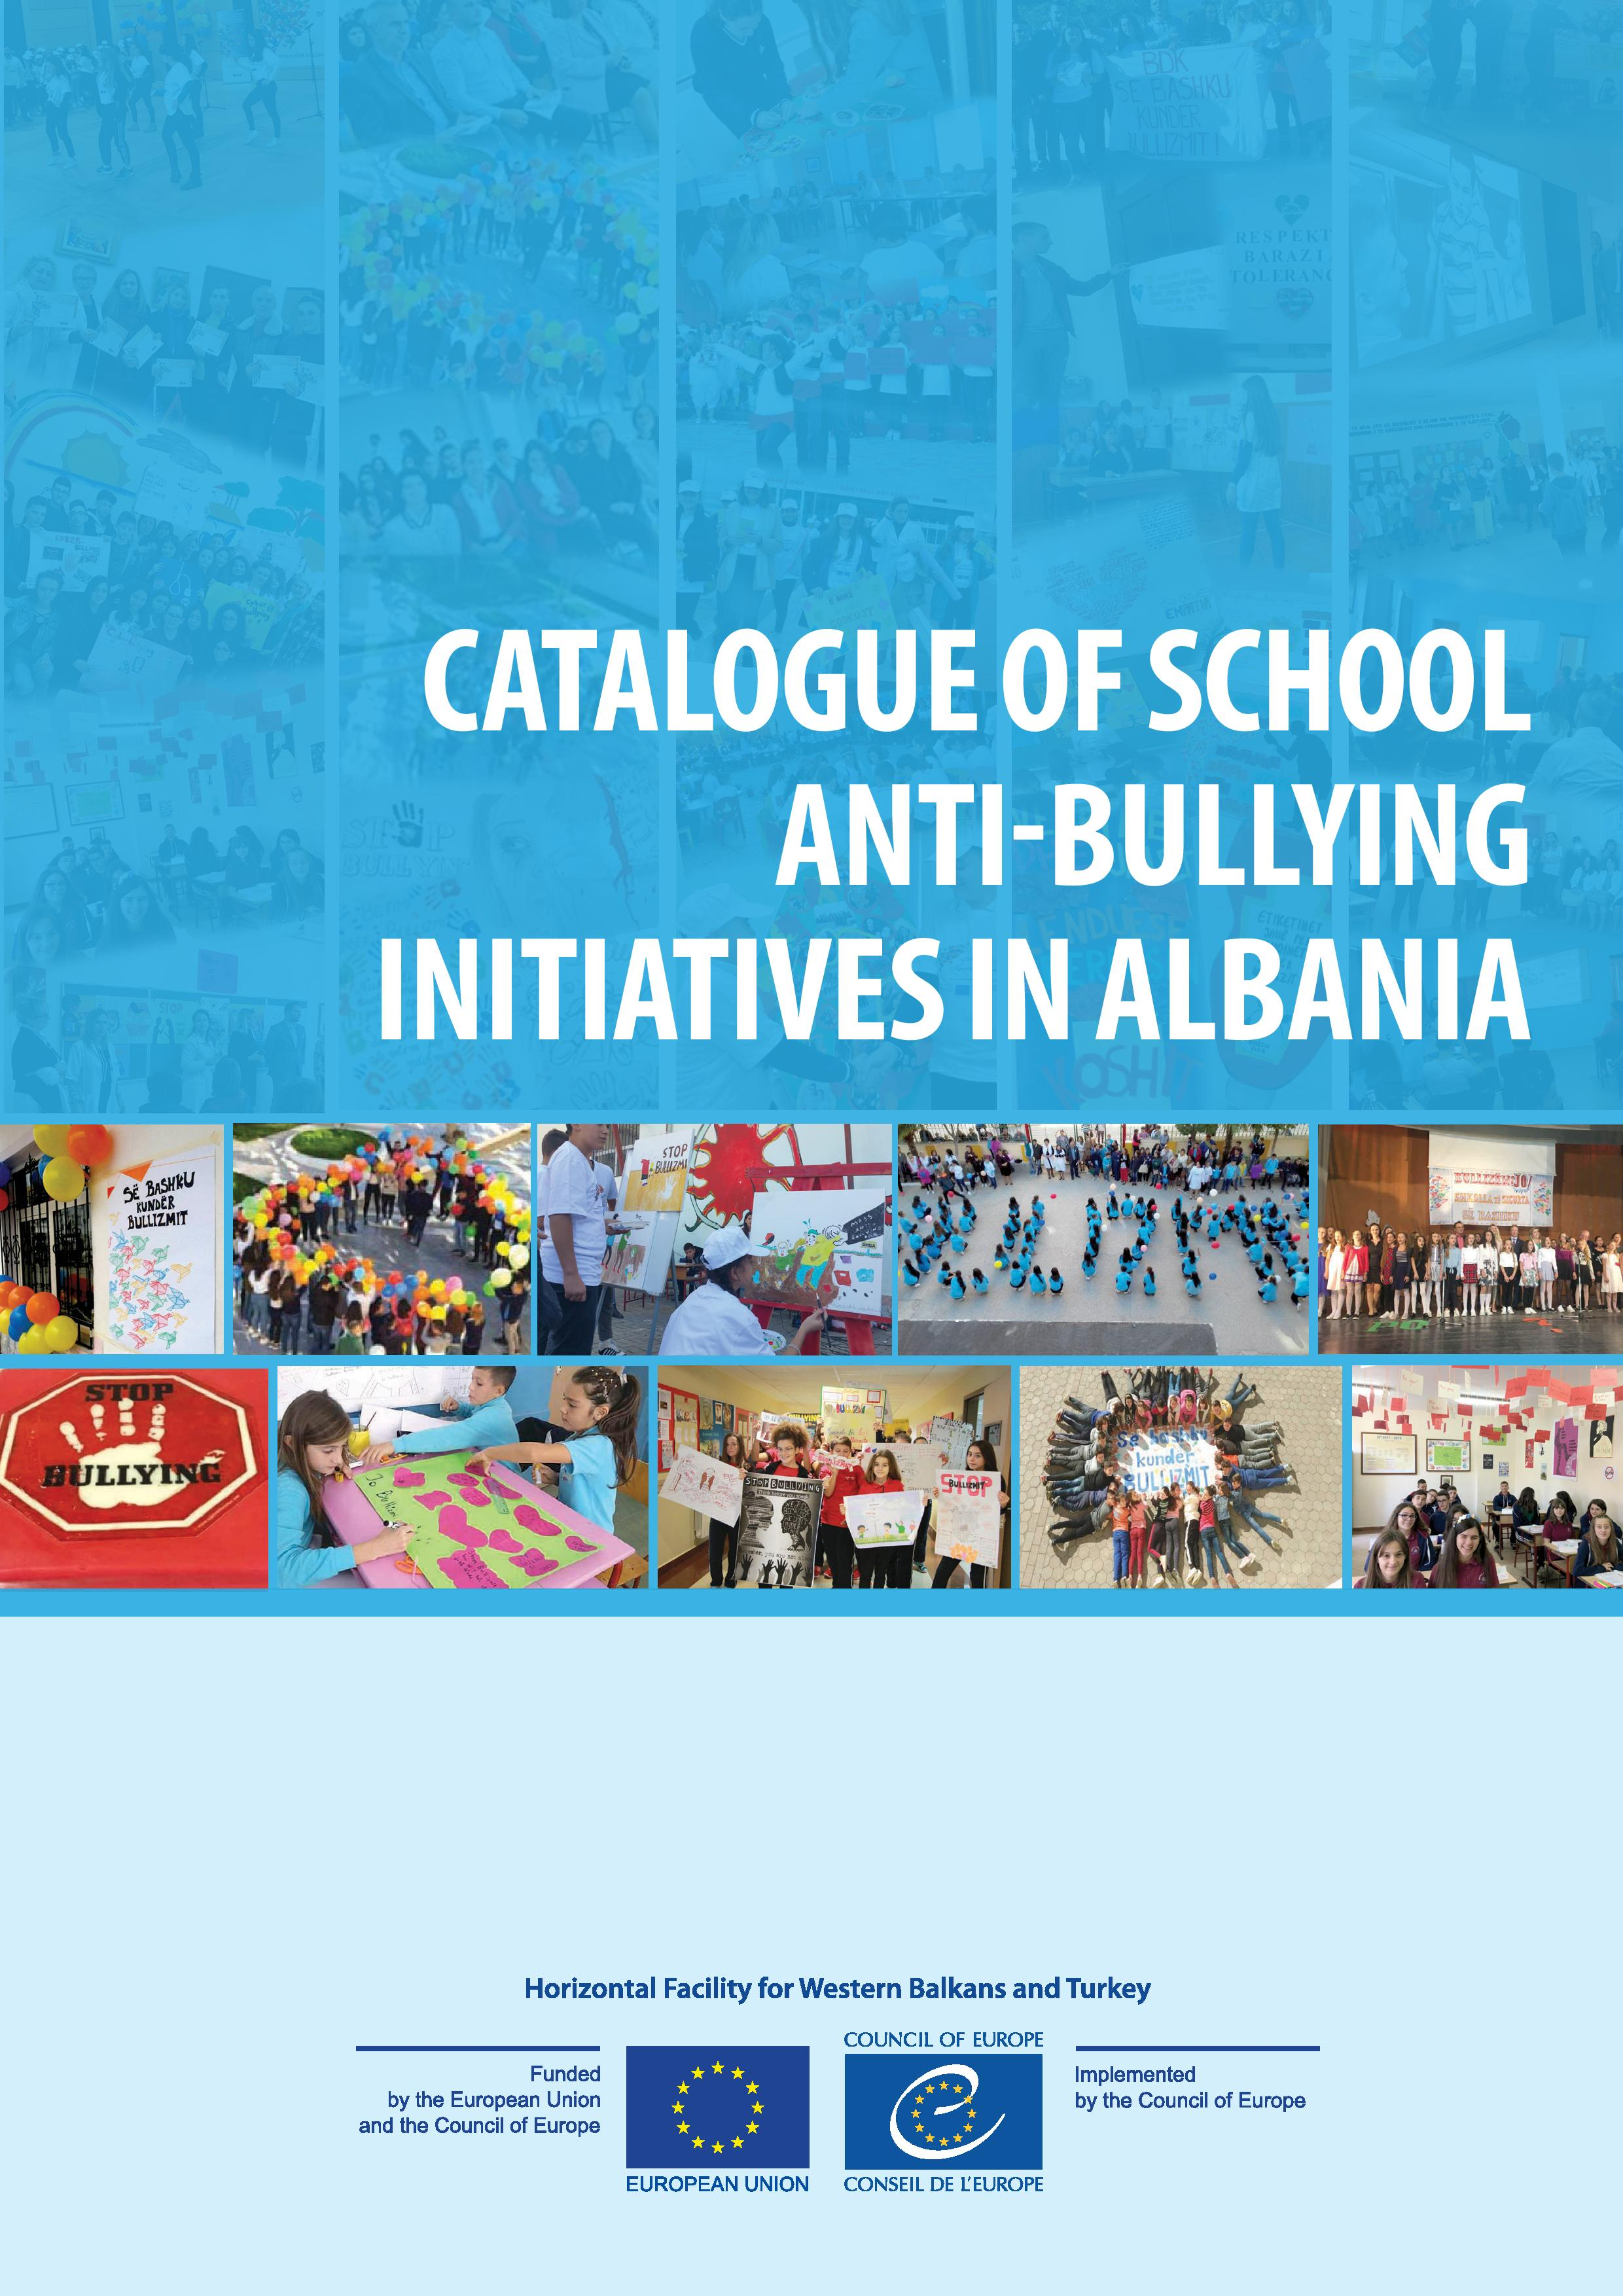 Catalogue of School Anti-bullying initiatives in Albania